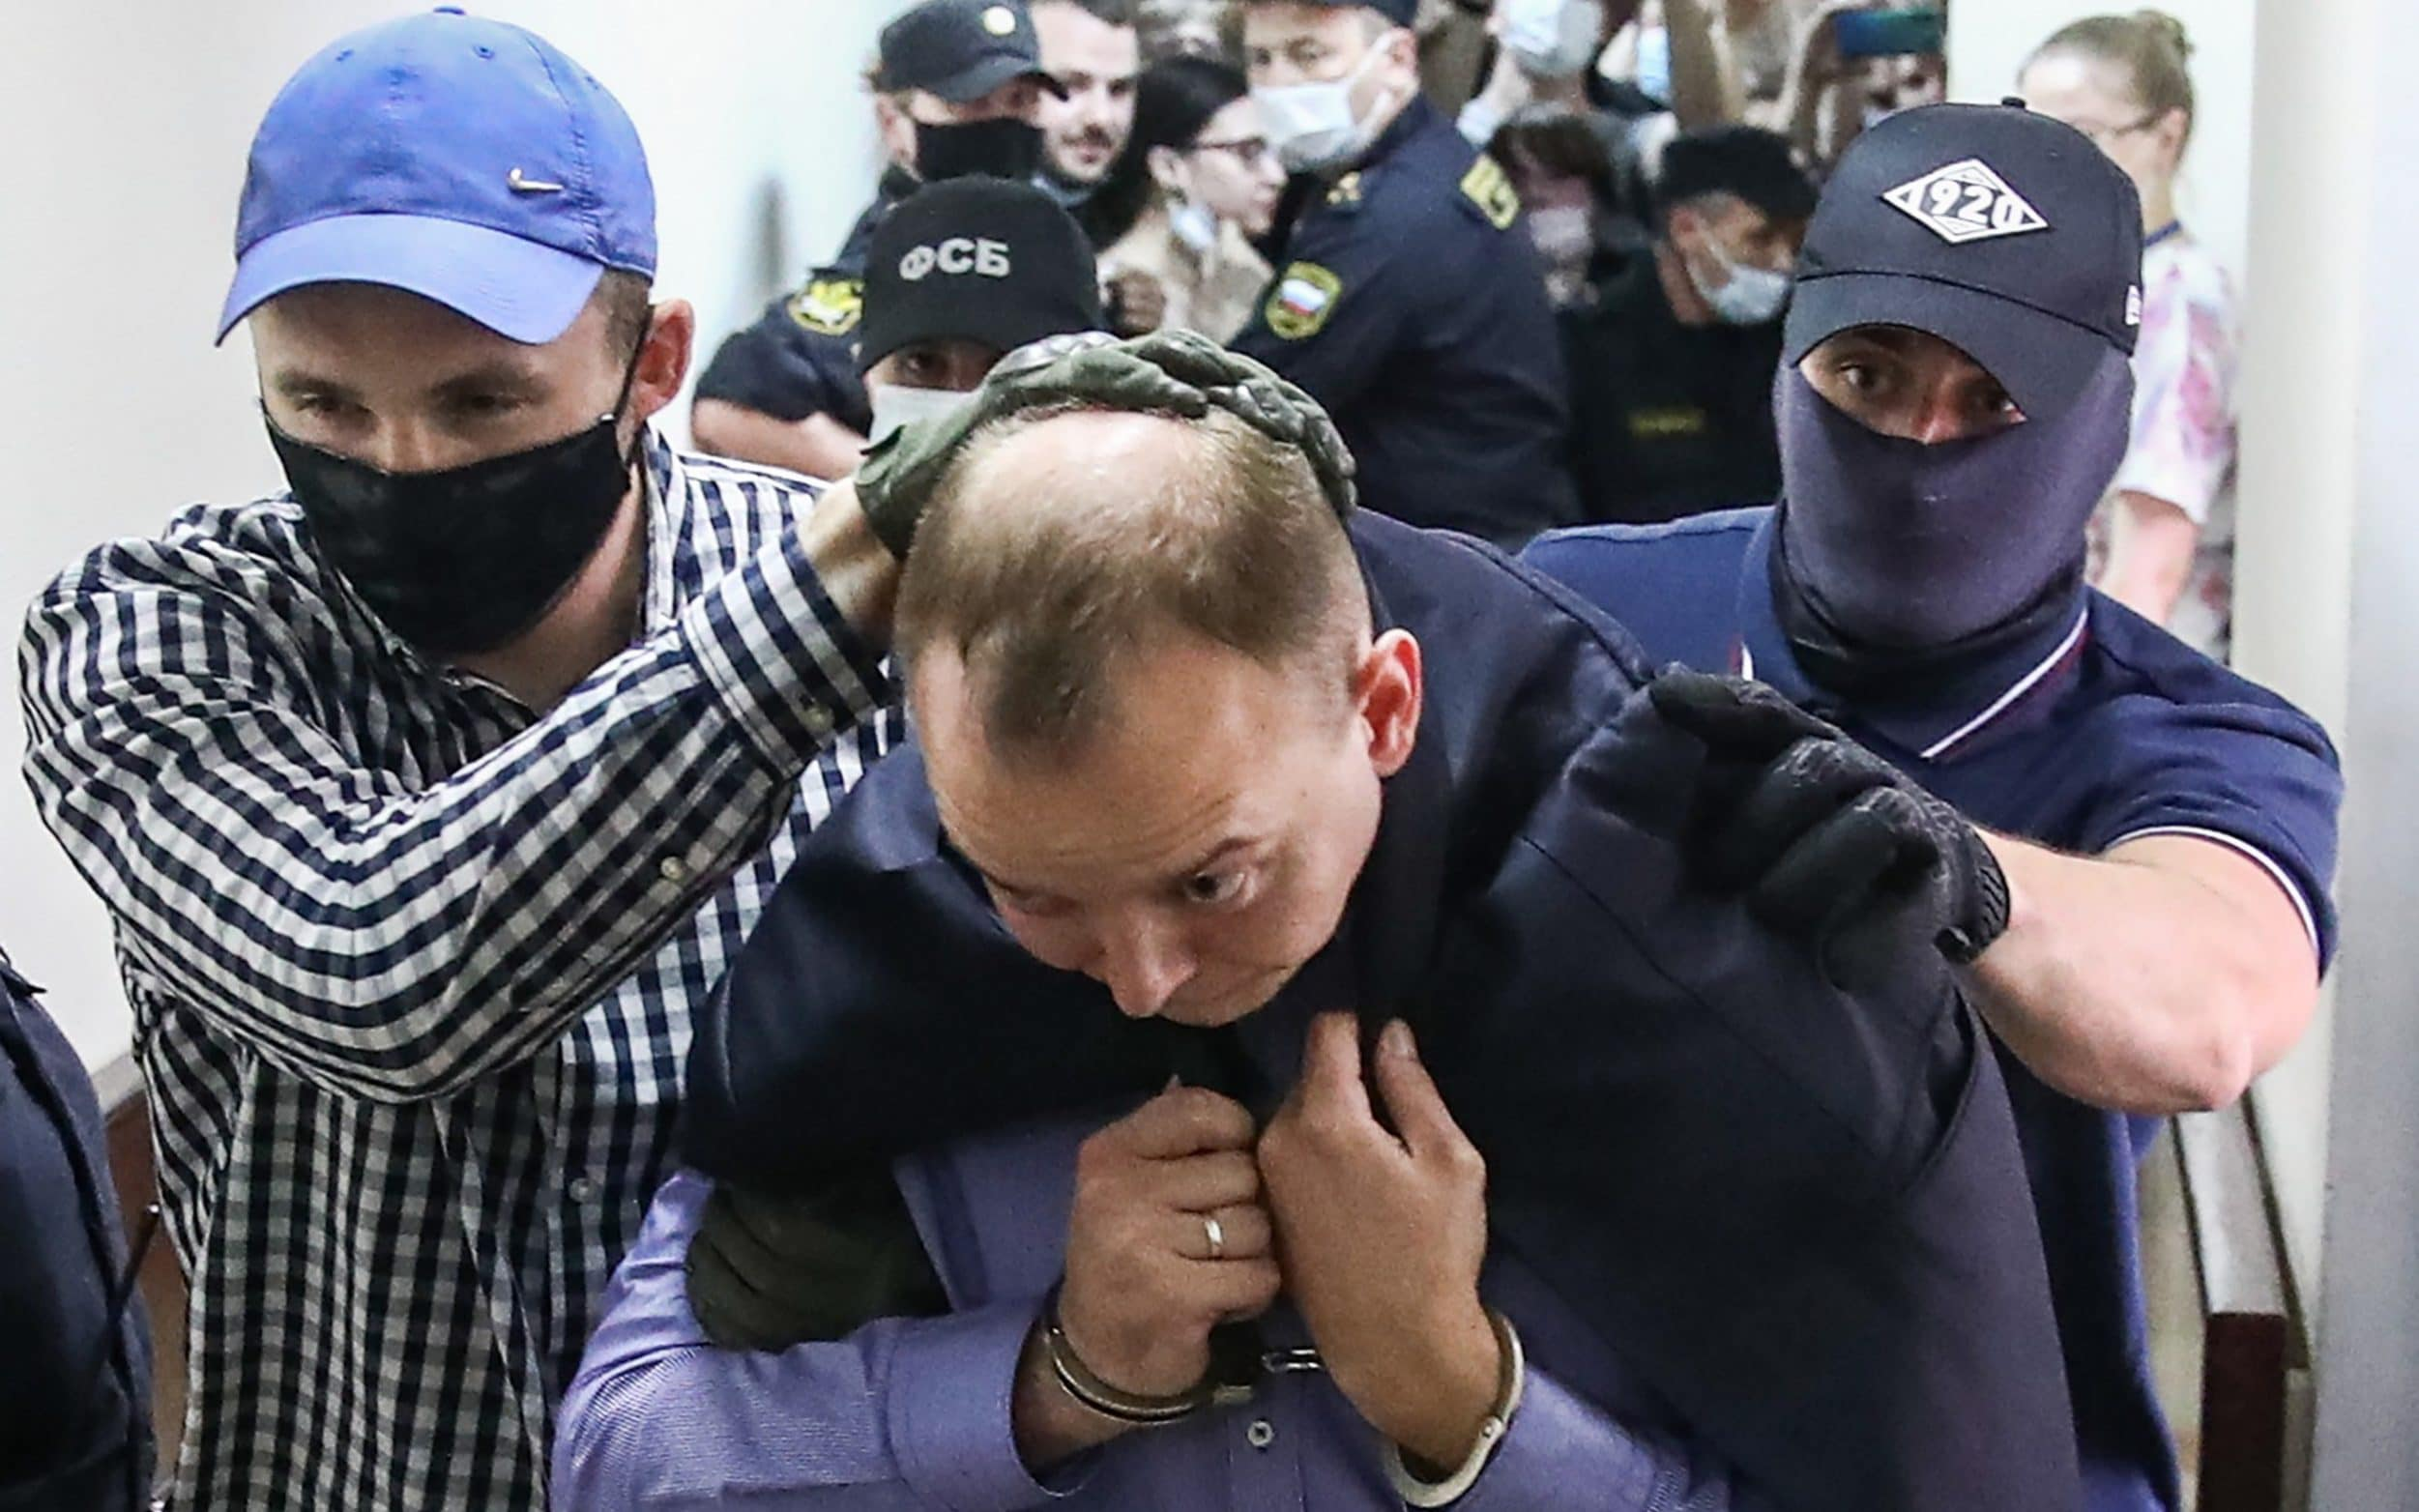 Russias journalists under increasing pressure from the secret services in wake of Putins shaky referendum victory